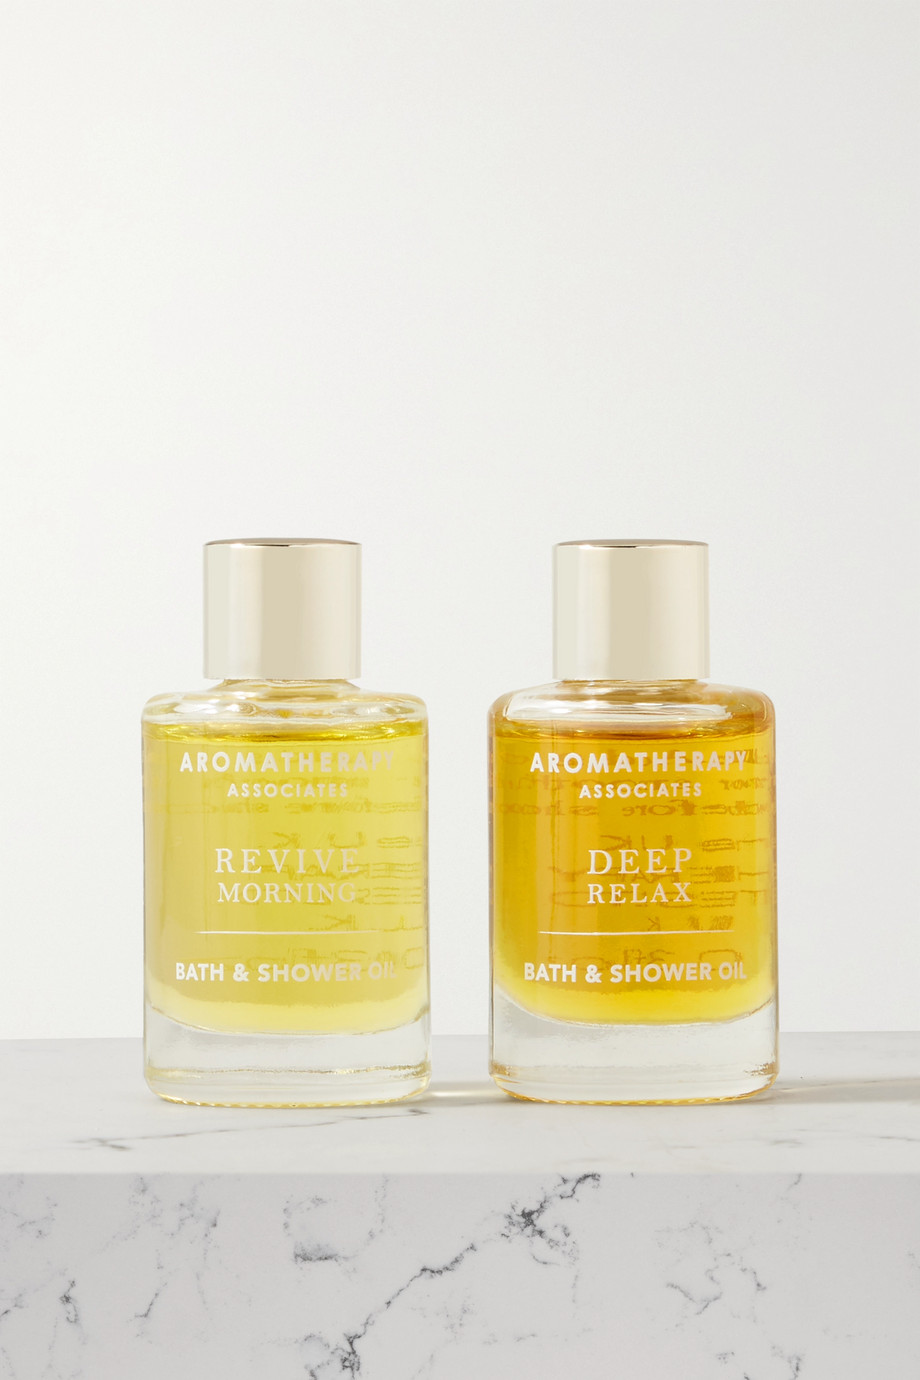 AROMATHERAPY ASSOCIATES Perfect Partners Essential Bath & Shower Oils, 2 x 9ml